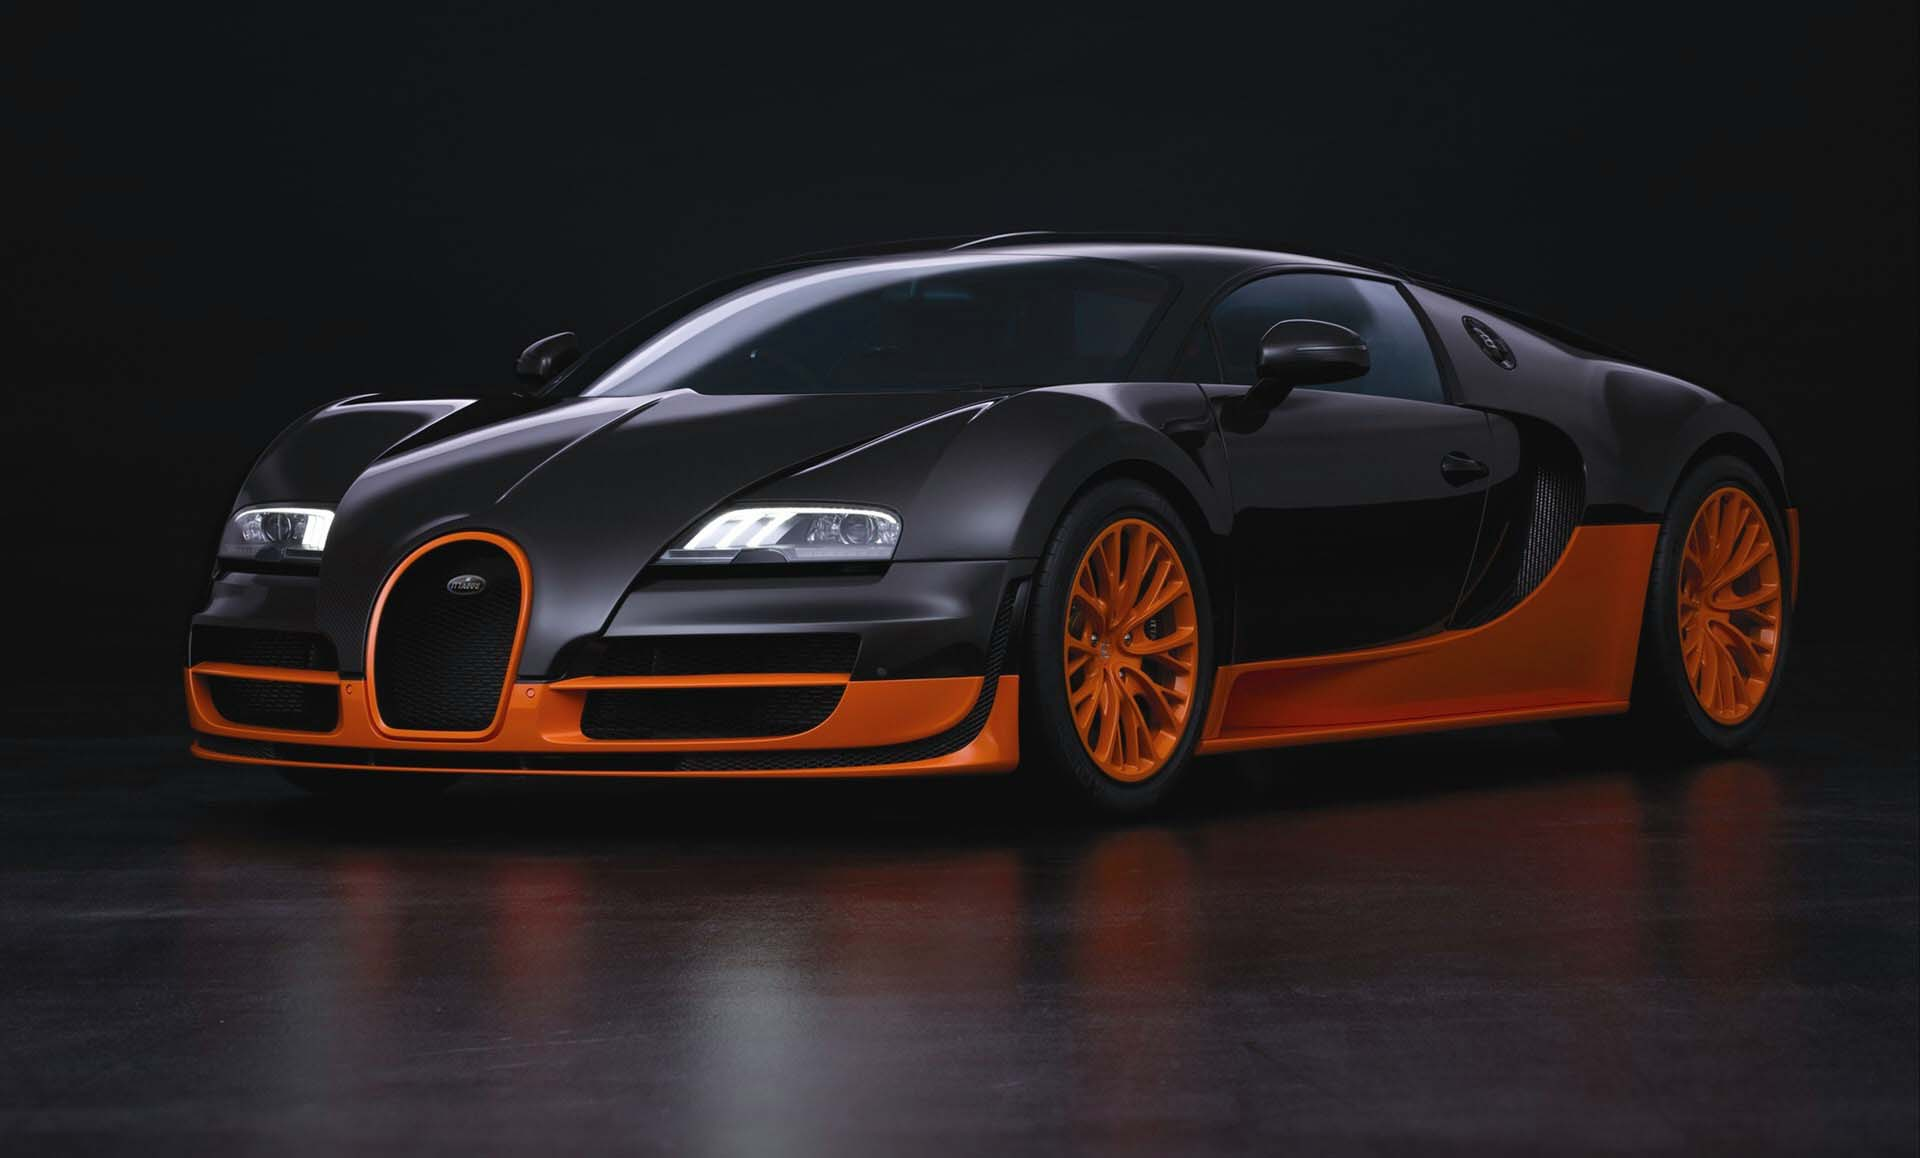 bugatti veyron super sport wallpapers wallpaper cave. Black Bedroom Furniture Sets. Home Design Ideas